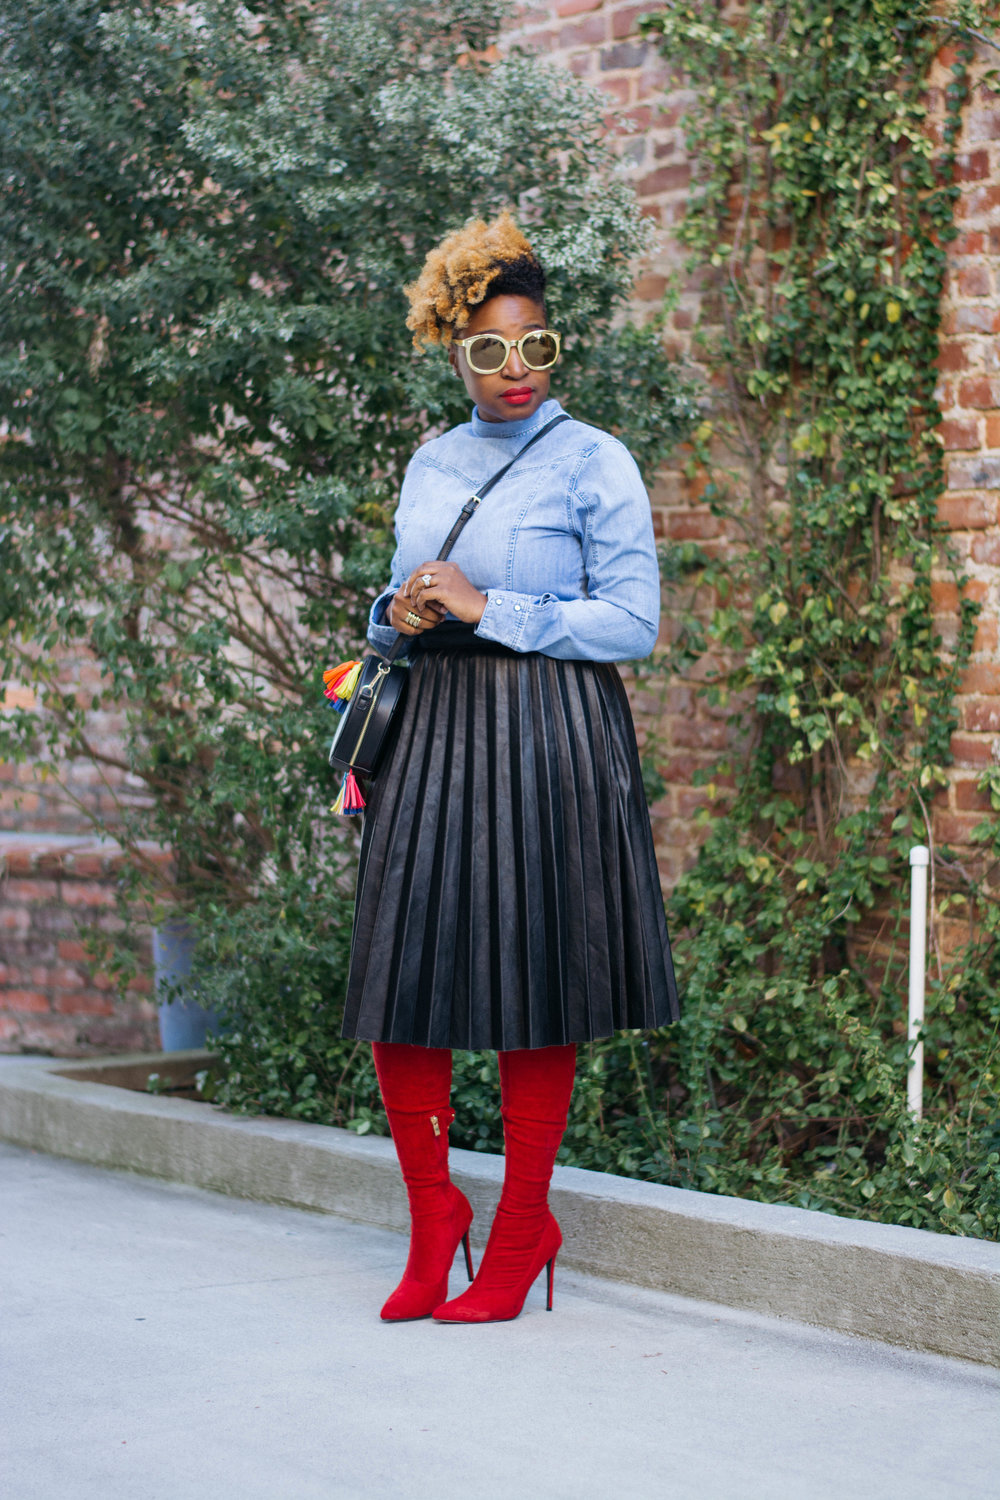 Atlanta style blogger, black blogger, top atlanta blogger